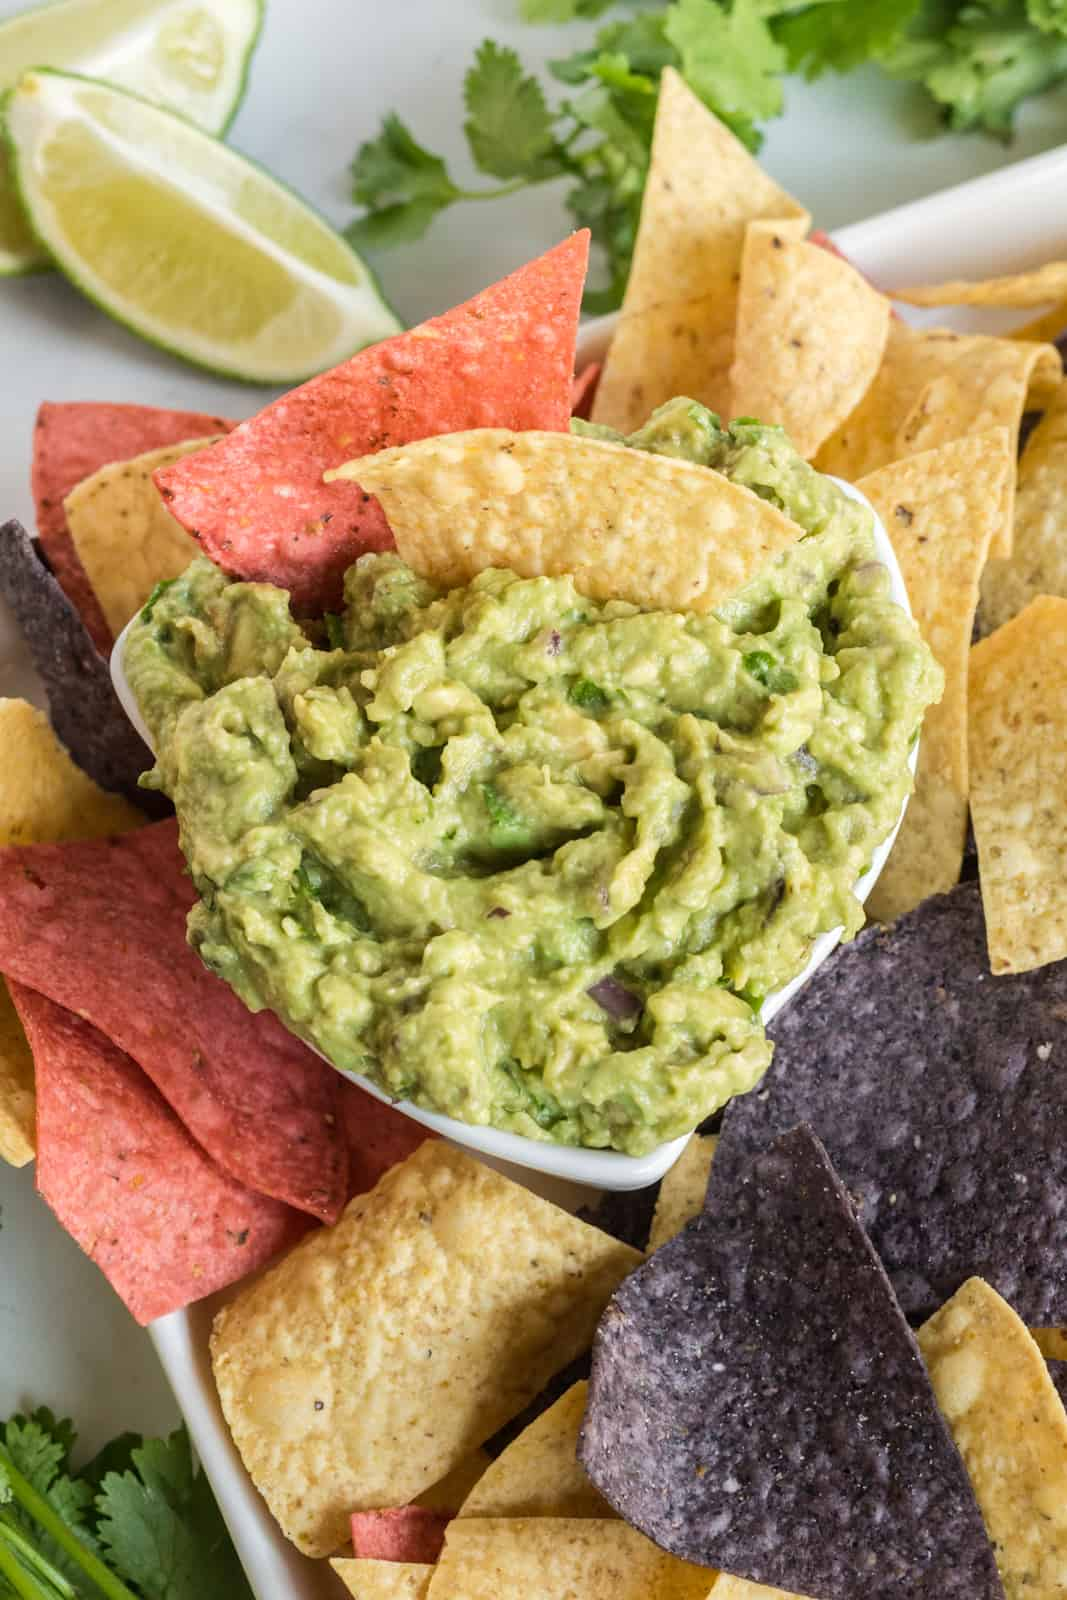 Overhead photo of guacamole in serving bowl surrounded by multicolor chips